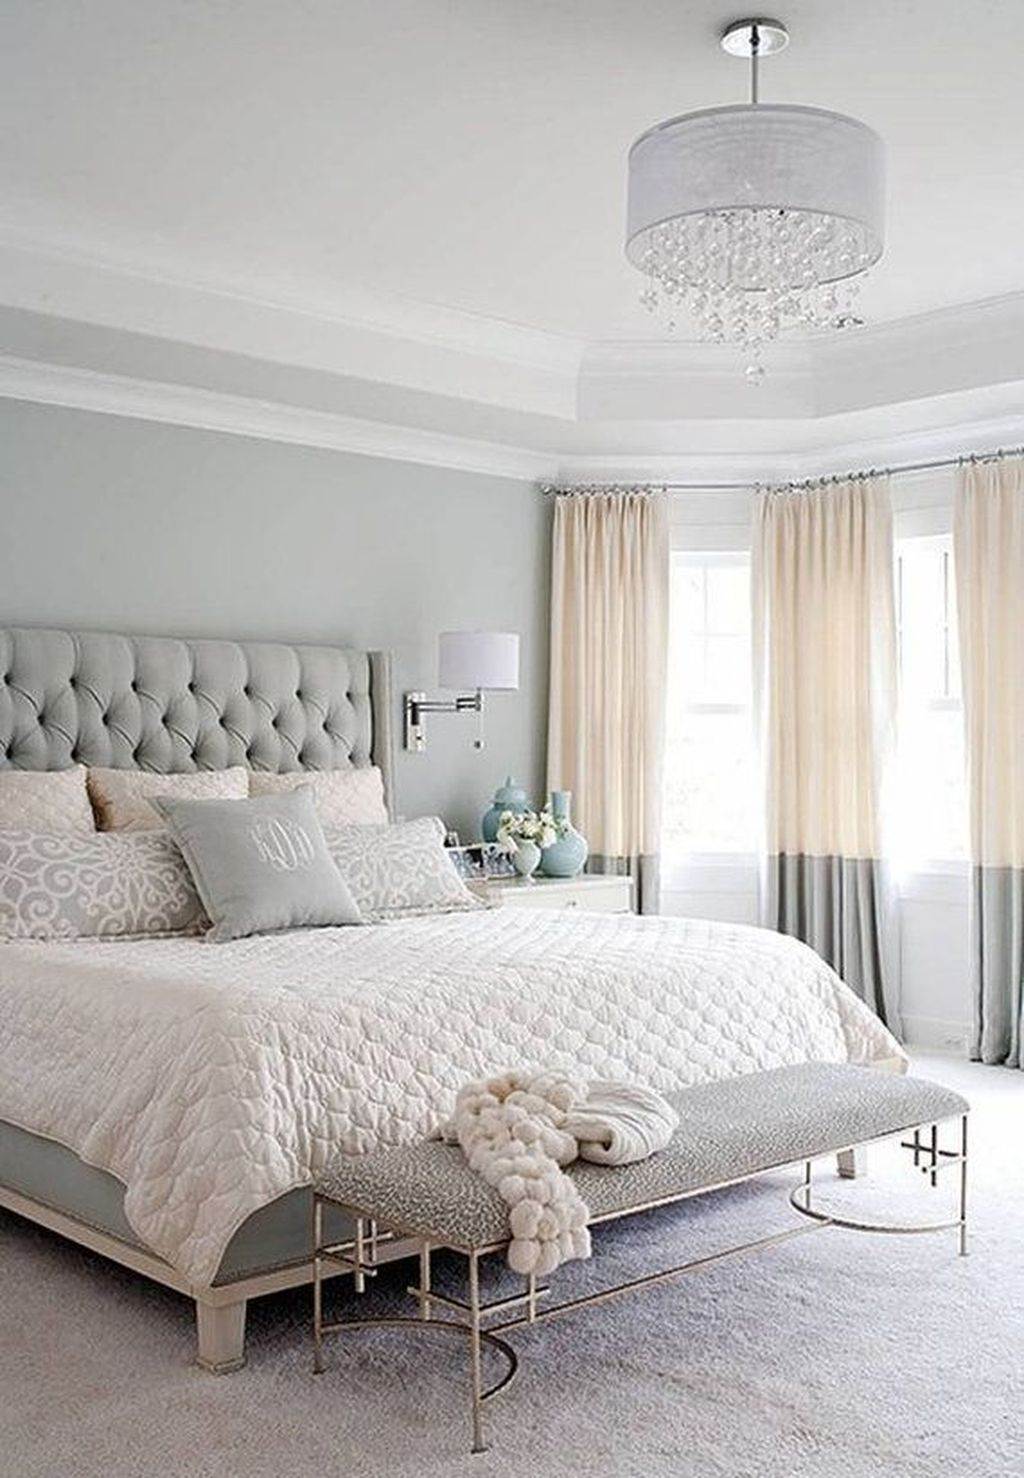 Admiring Bedroom Decor Ideas To Have Right Now 25